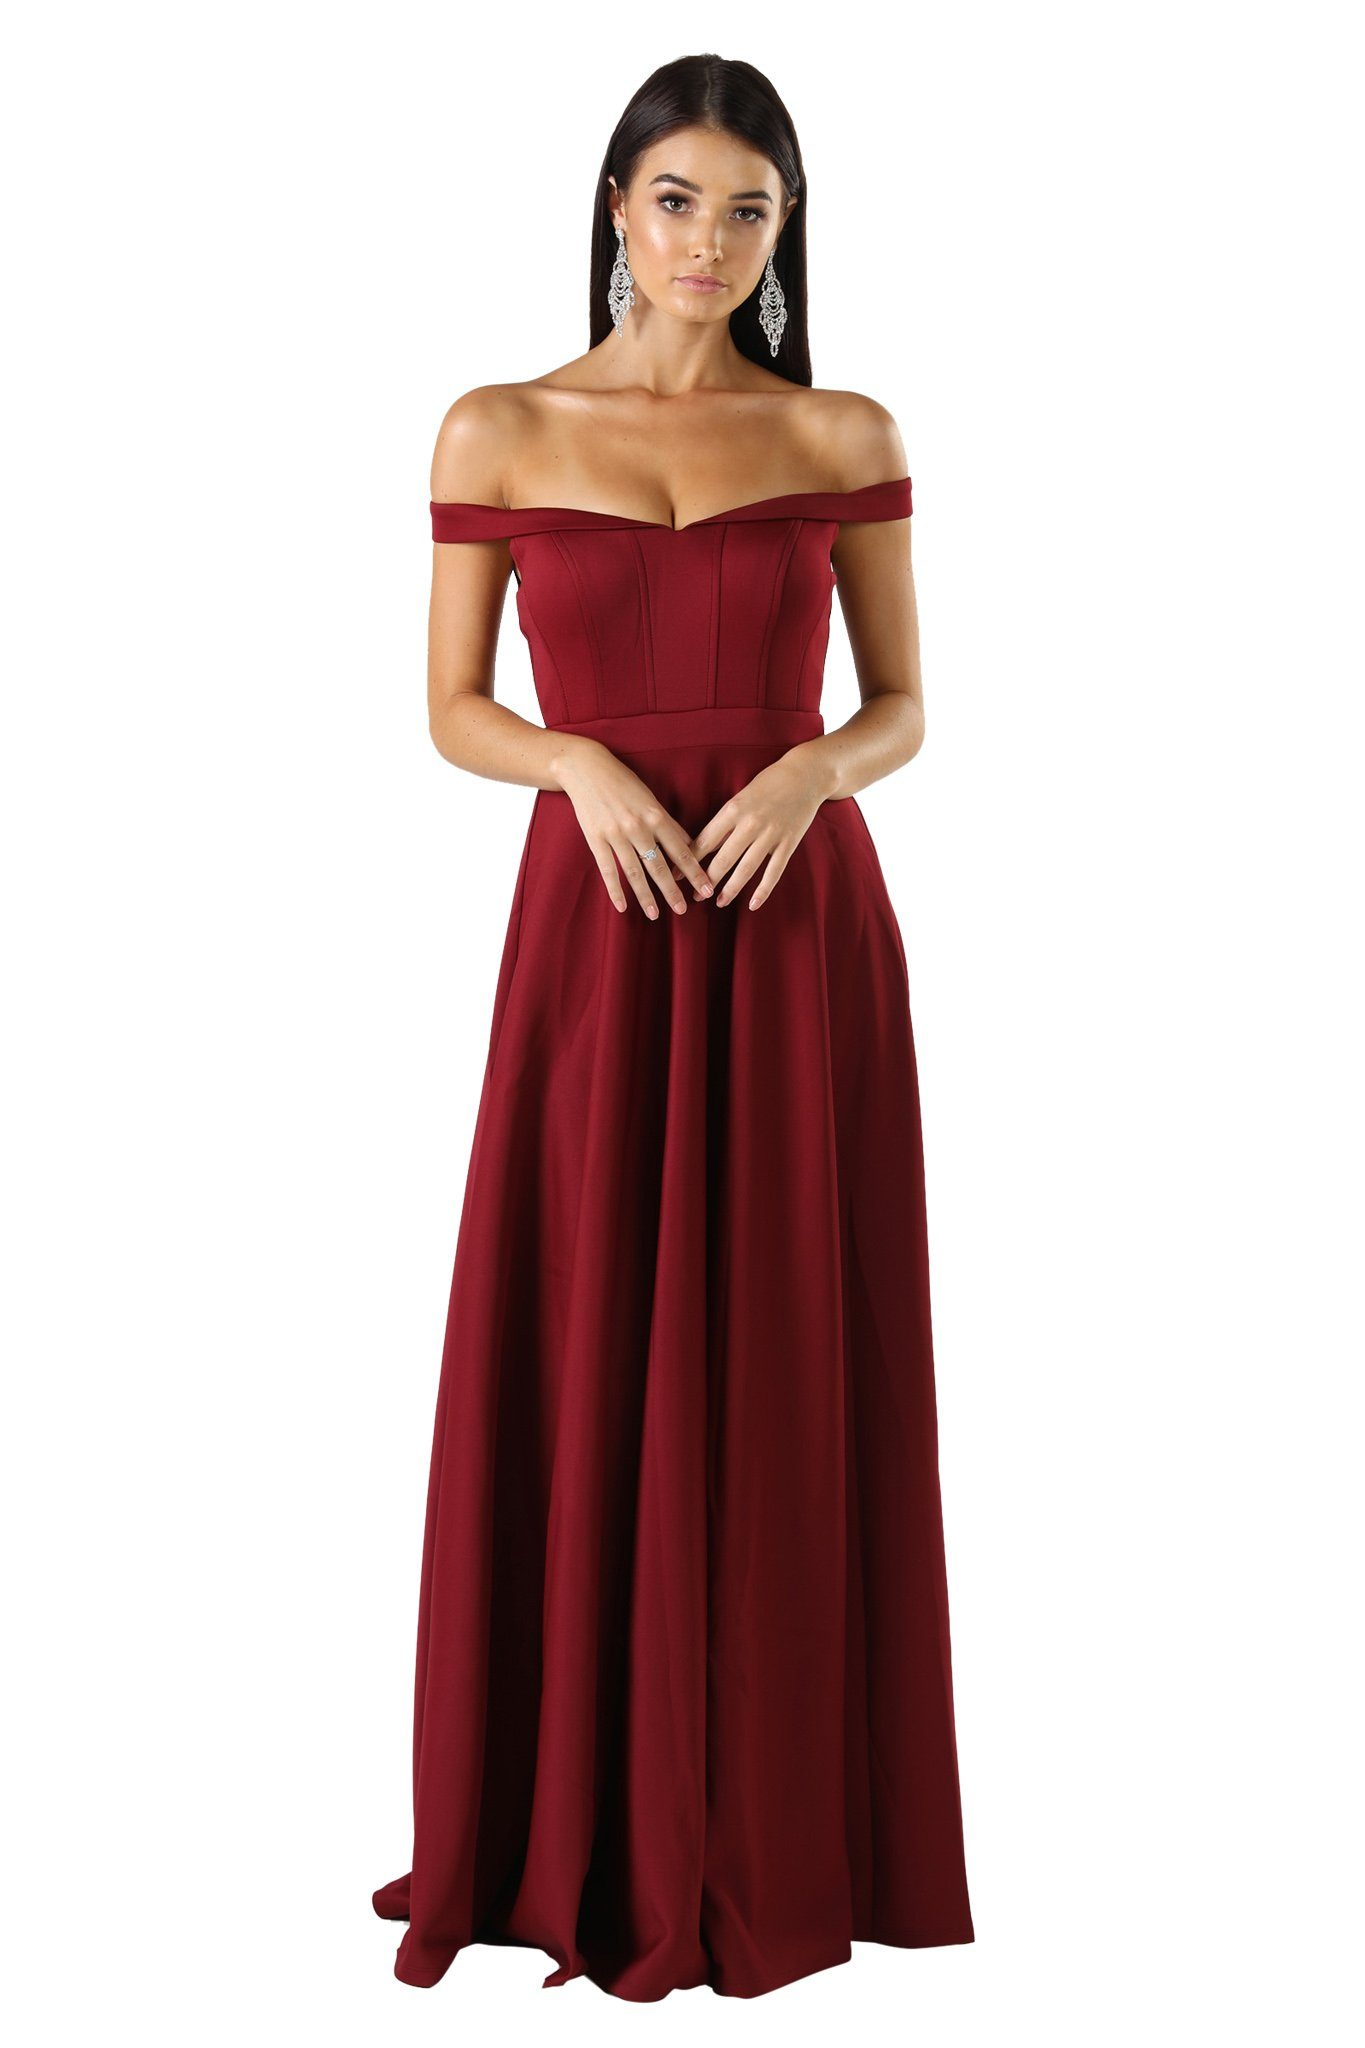 317b2db3ae95 Off shoulder ponti floor length A line skirt gown in wine deep red color